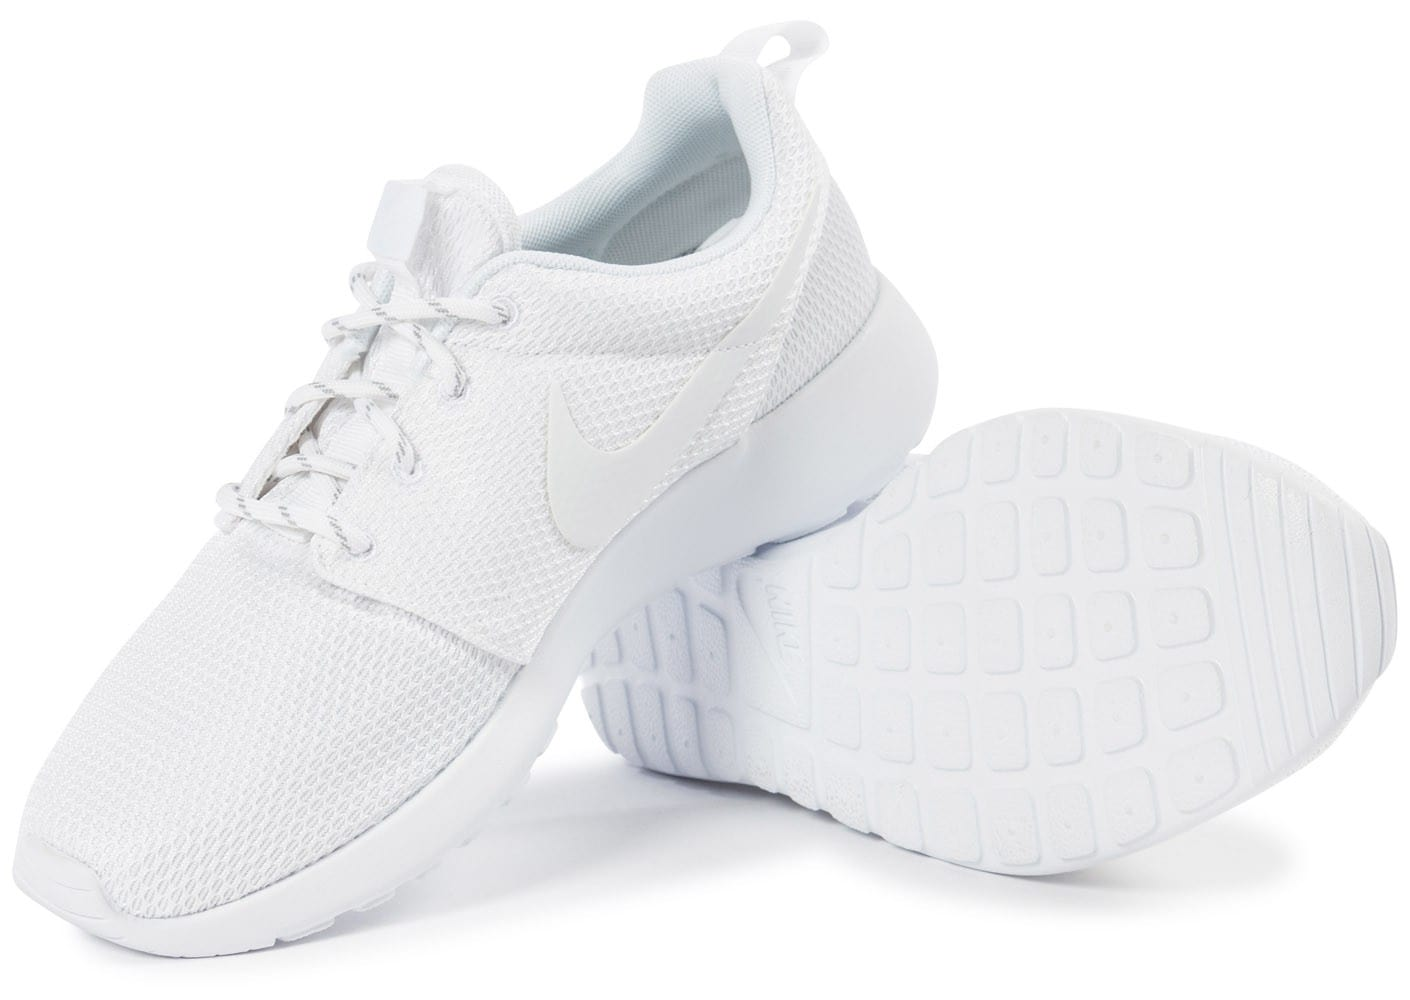 quality design 897ff c46e6 Chaussures Nike Roshe One Triple blanc vue intérieure .